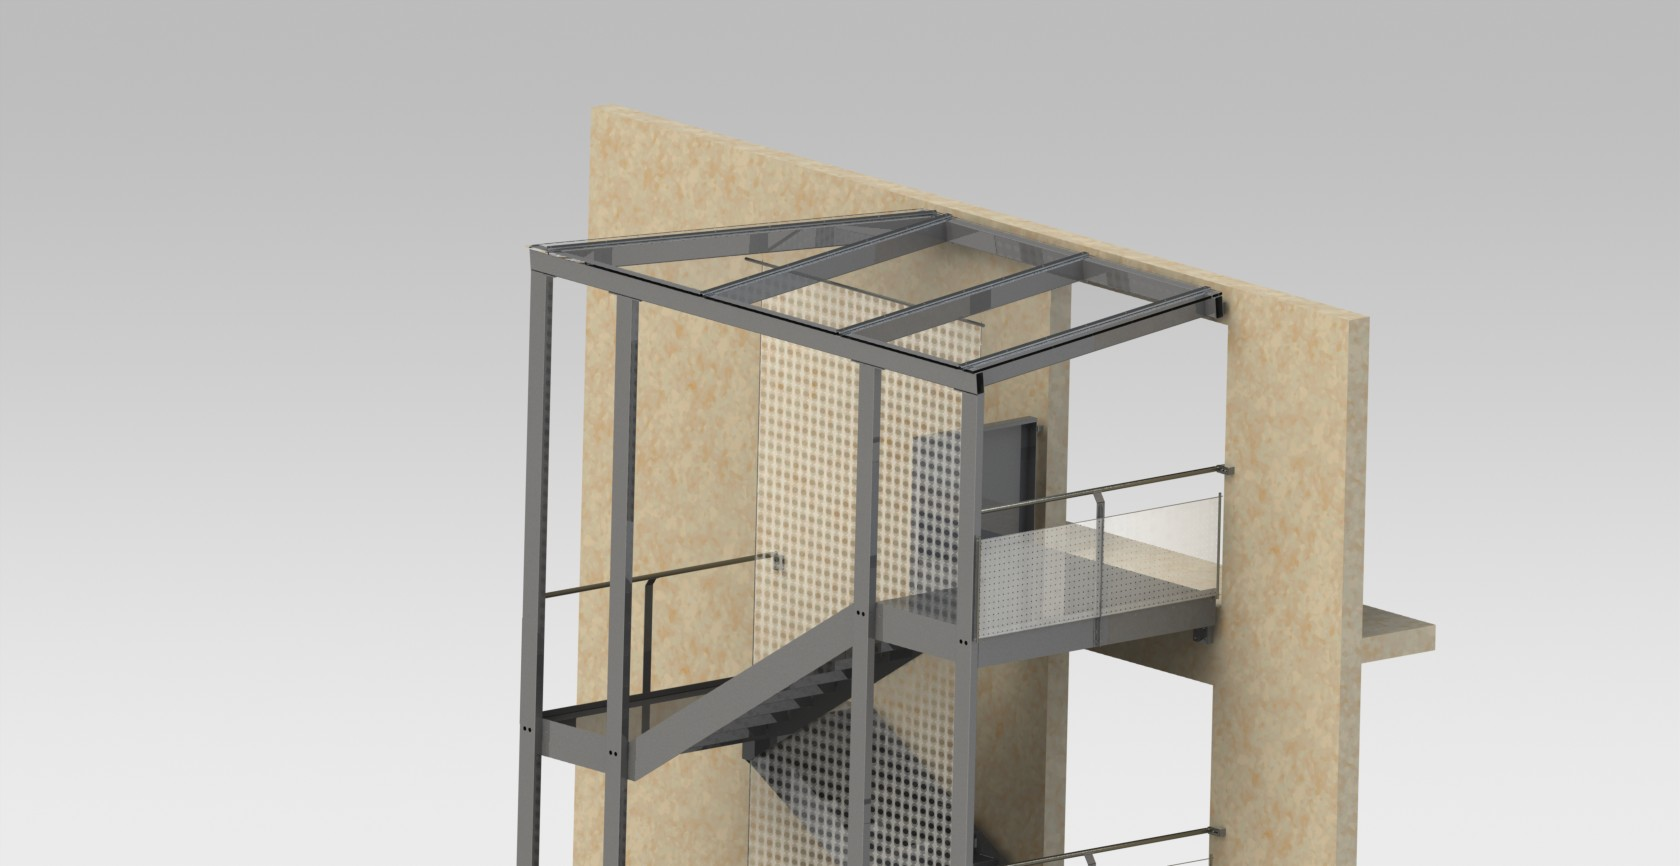 Cage d escalier ext rieure rdmetal bureau technique construction m tallique for Cage escalier